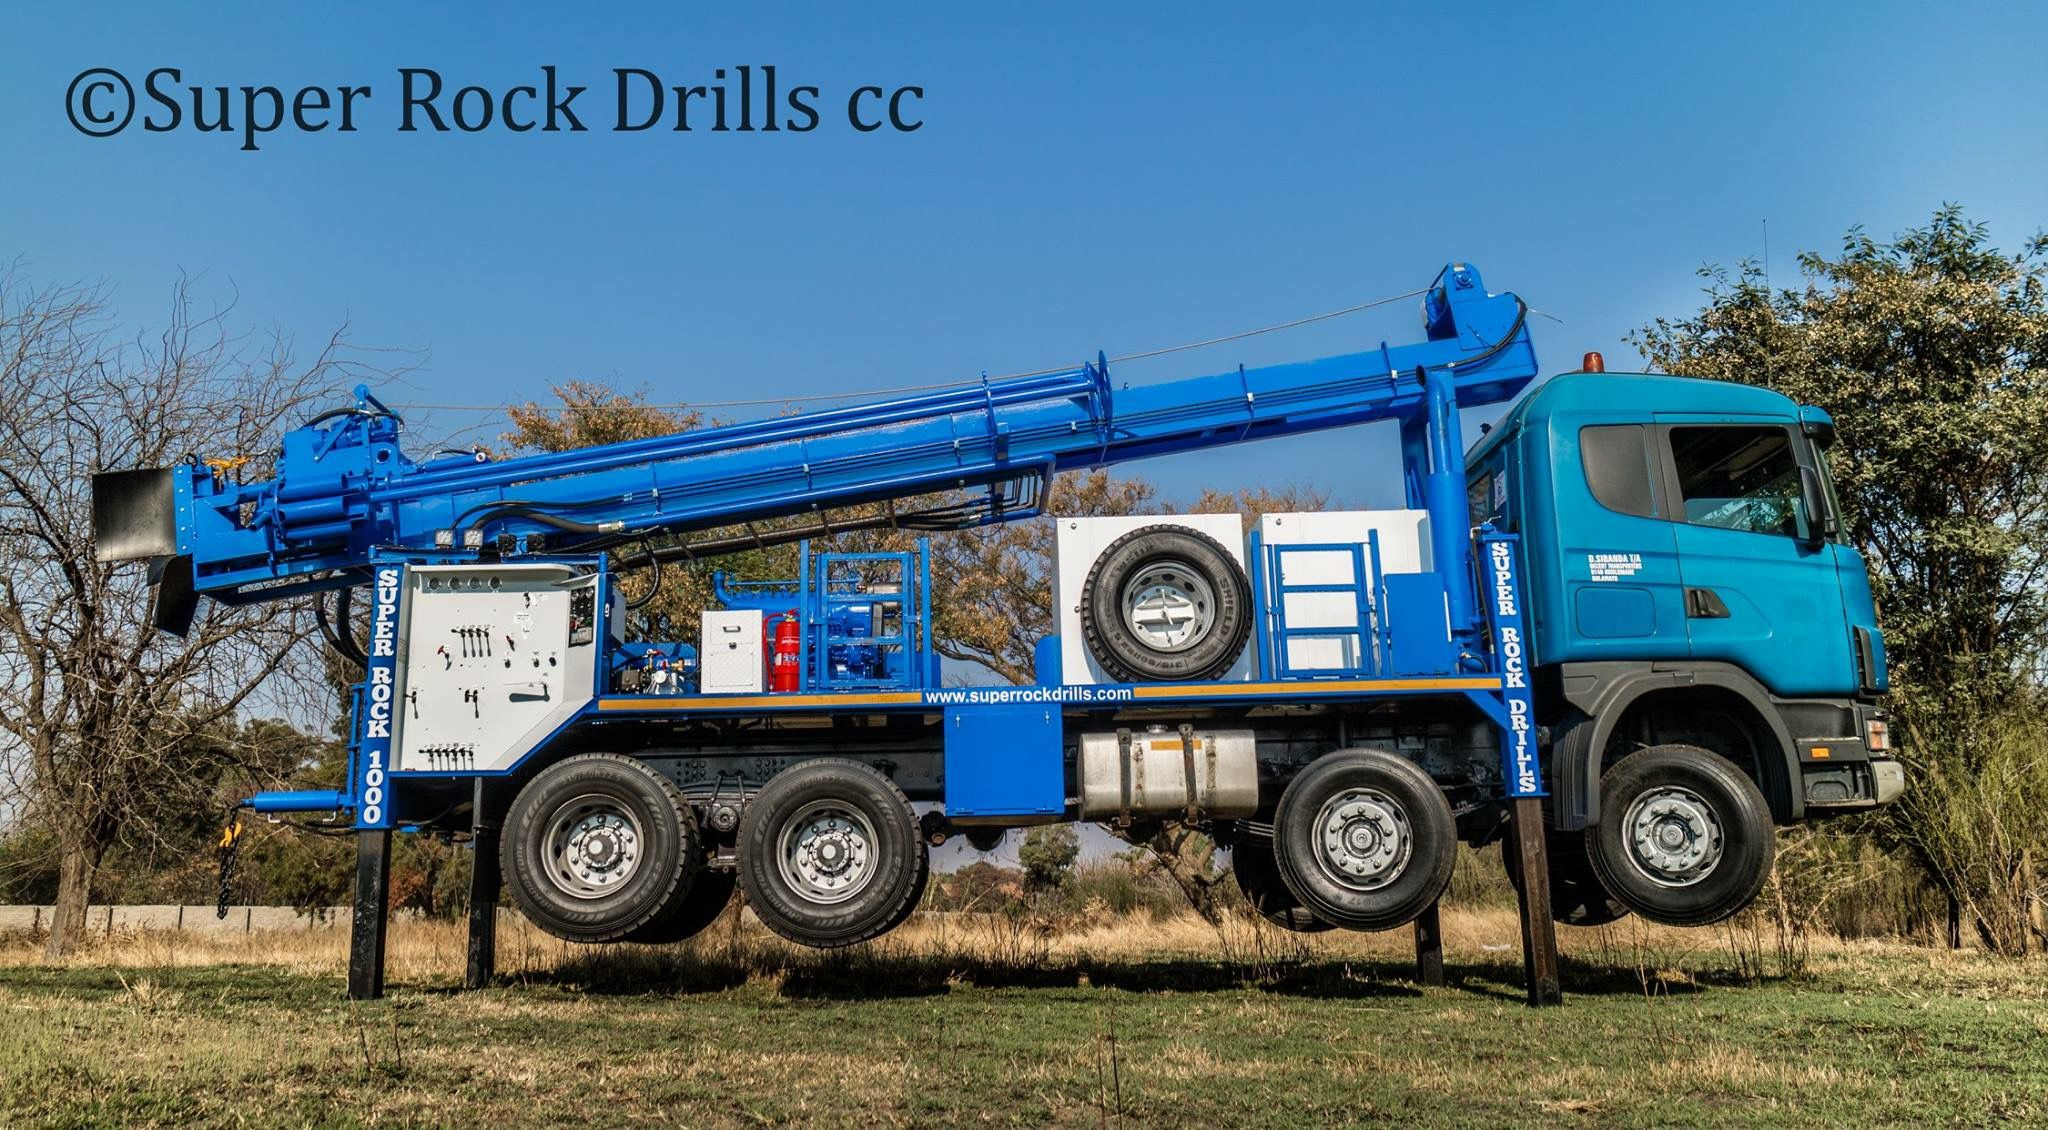 A Super Rock 1000 Water Well Drill Rig With Images Water Well Drilling Drilling Machine Drilling Rig